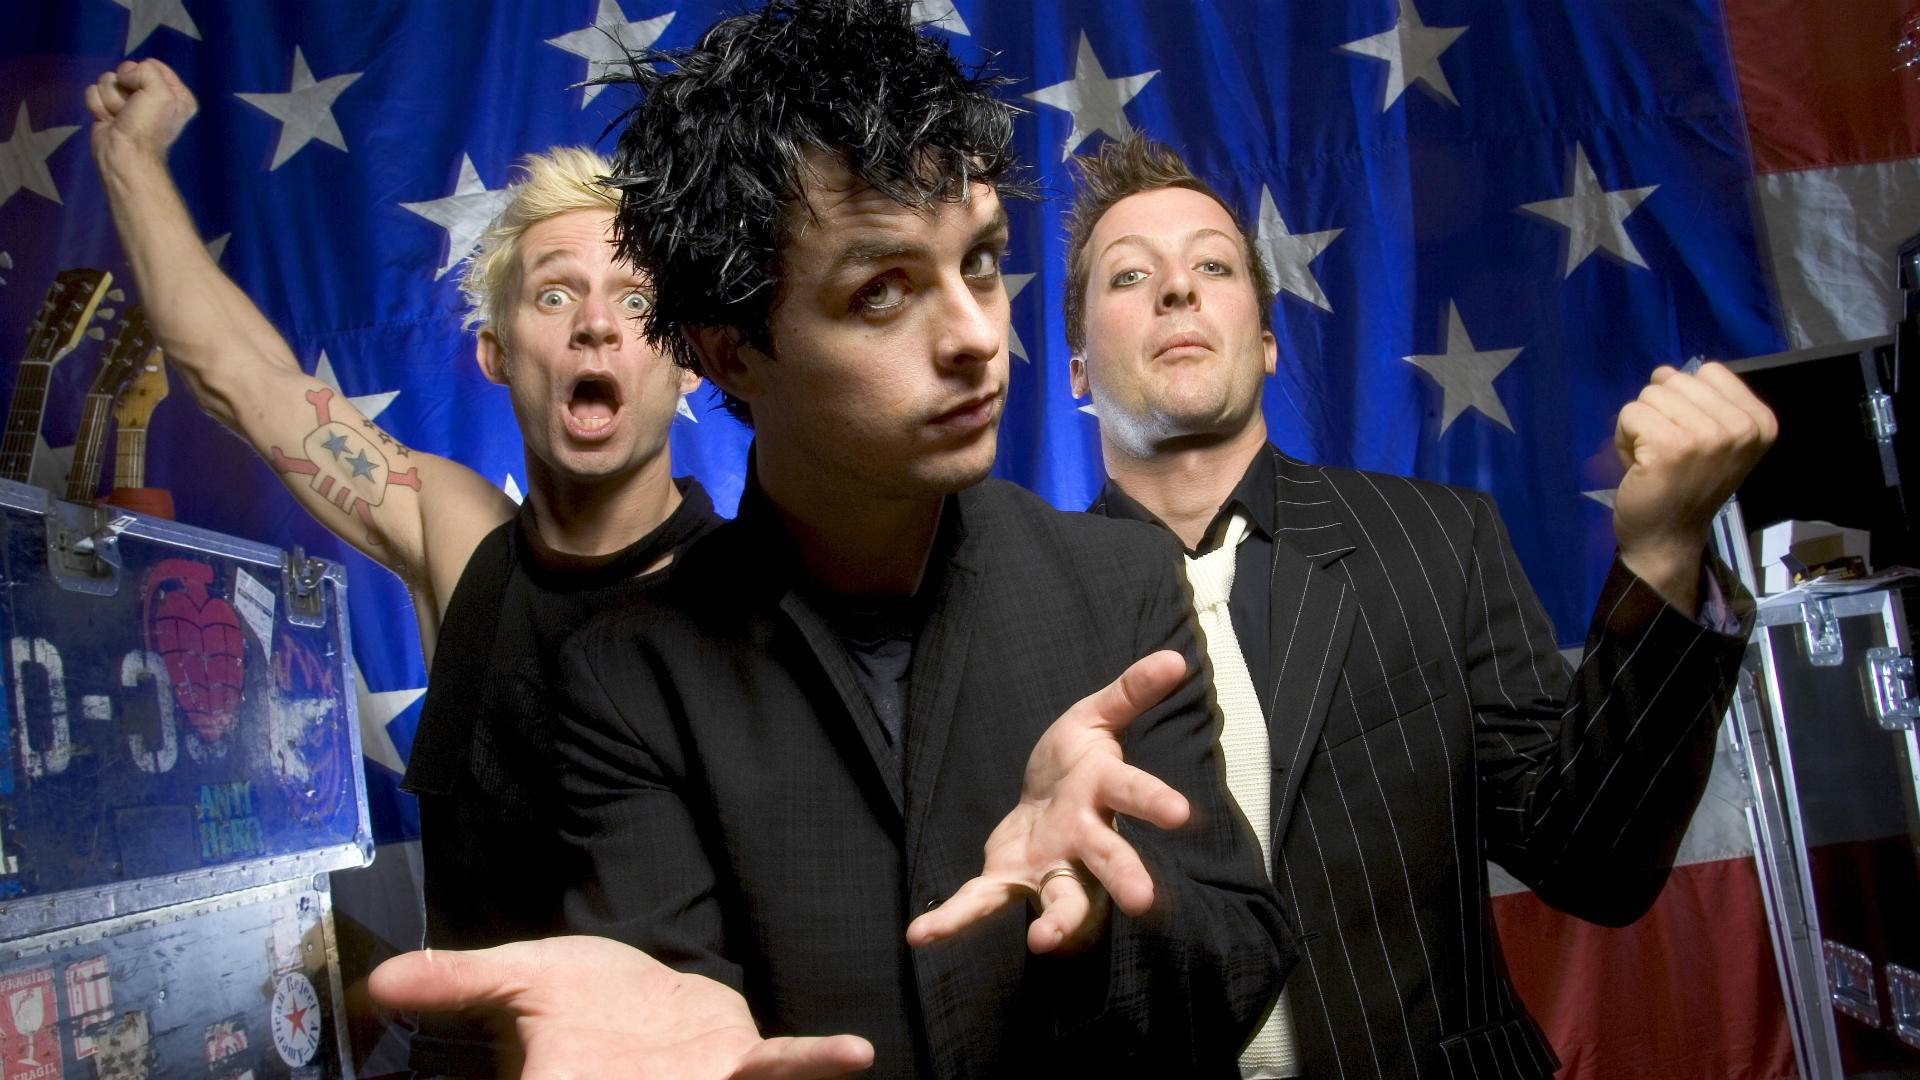 Billie Joe Armsrong dei Green Day, foto: Getty Images